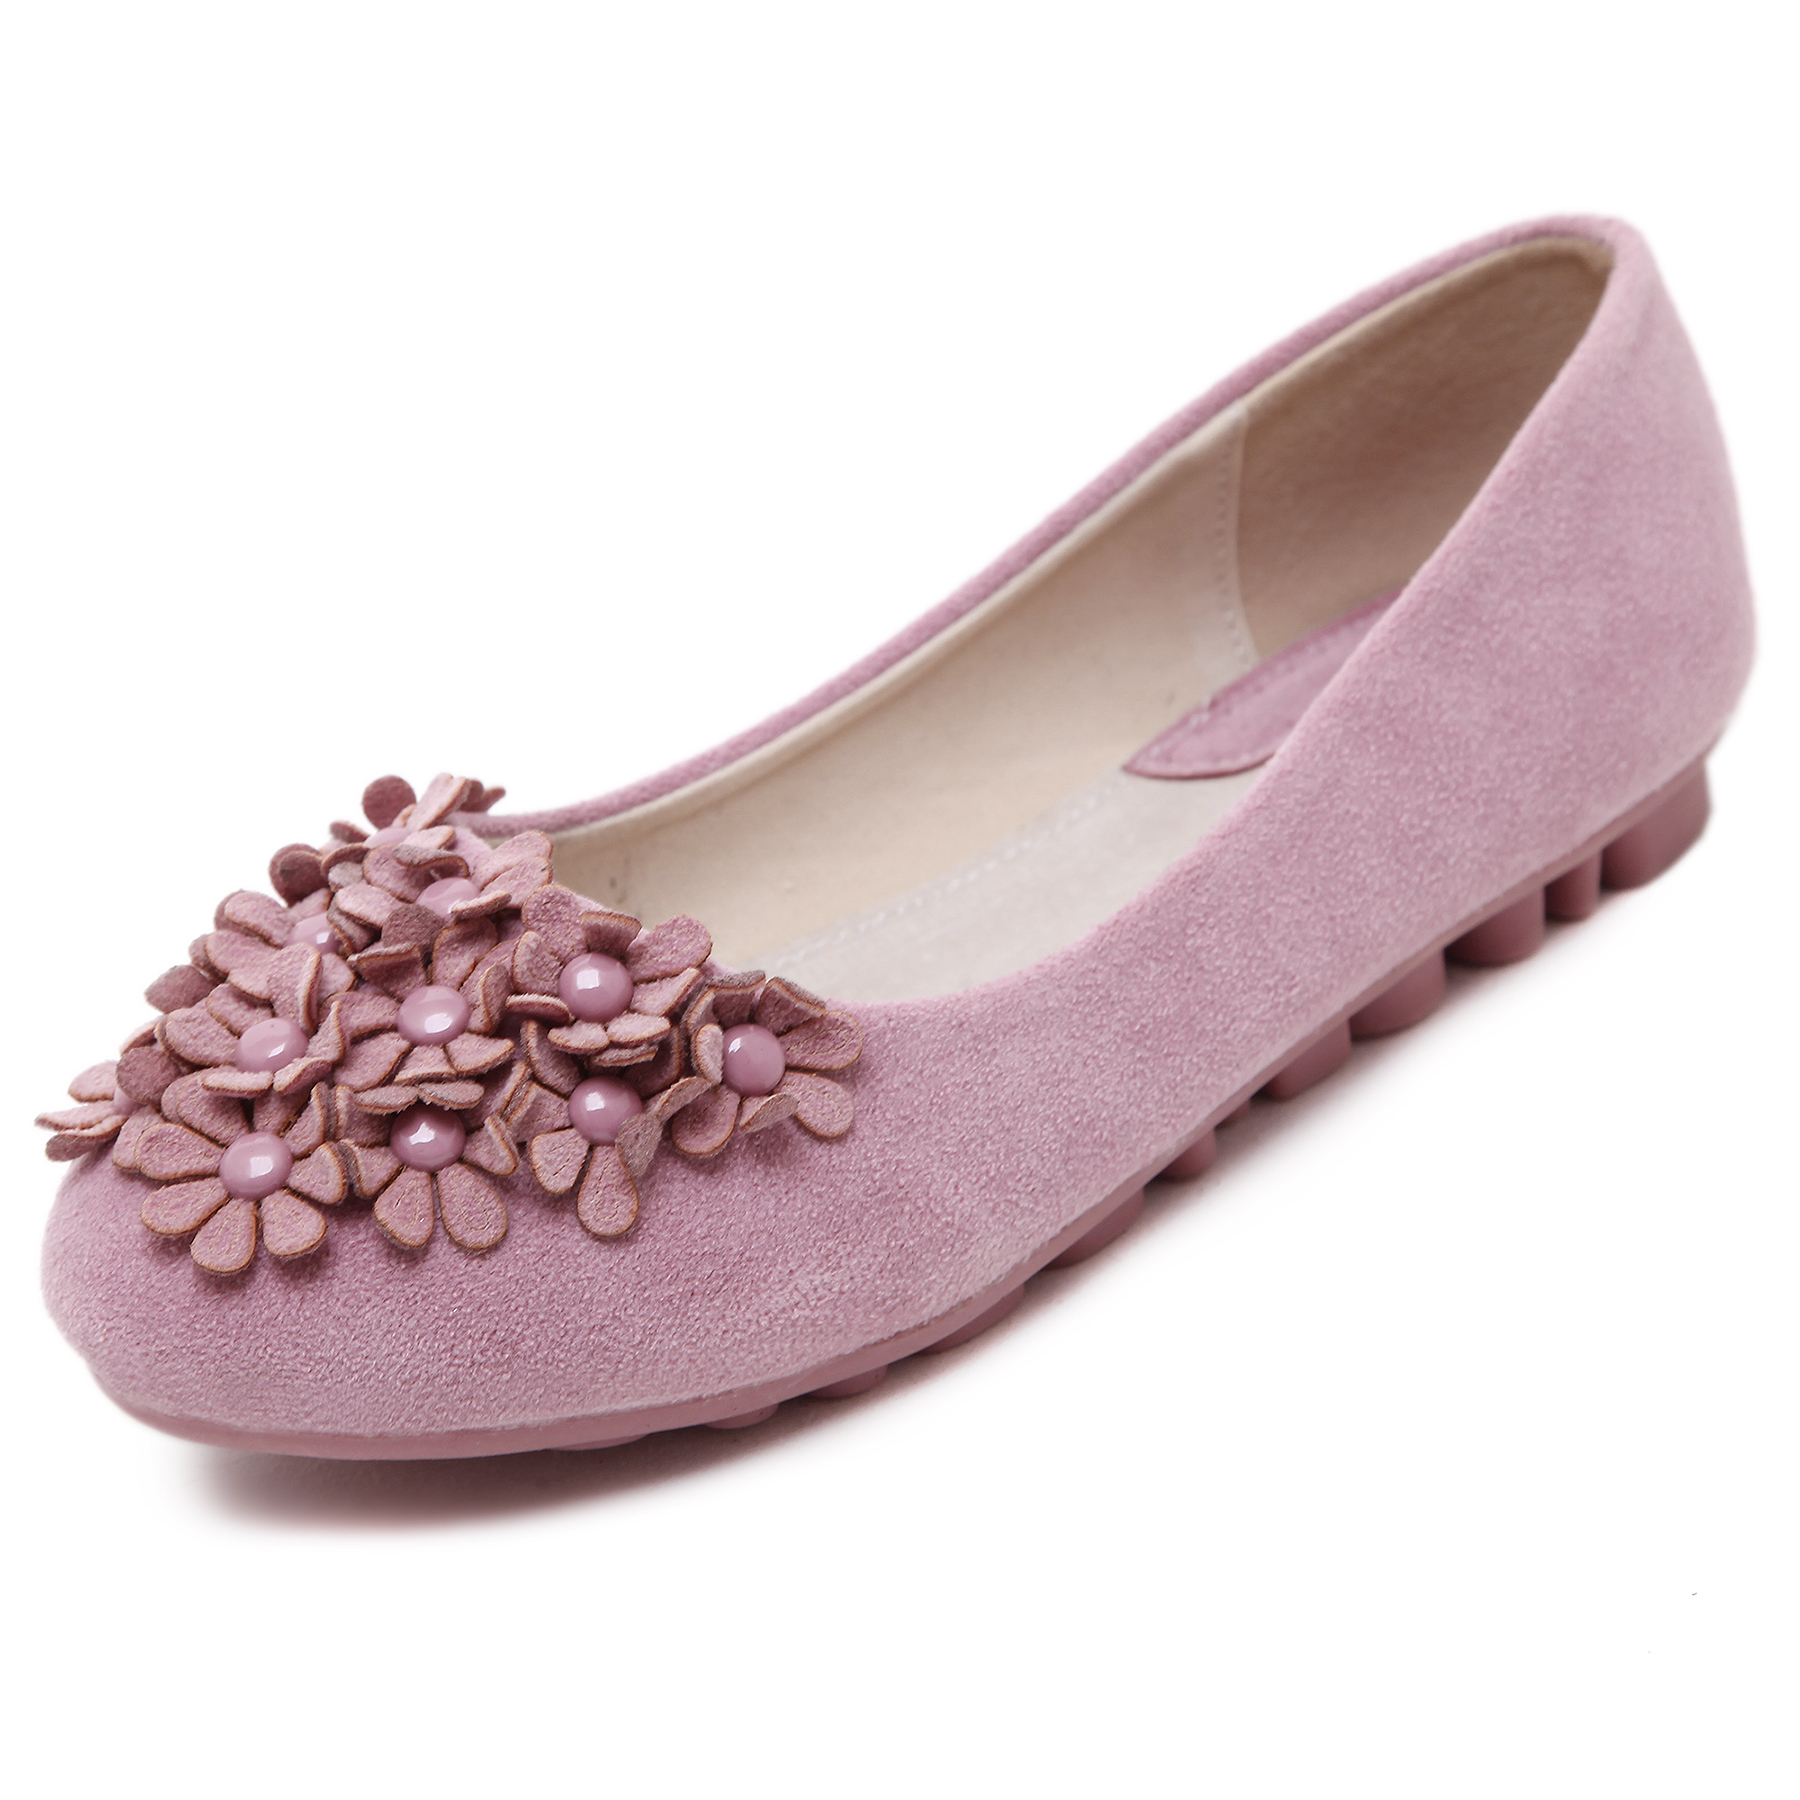 Brand New Fashion Casual Flowers Loafers Sweet Candy Colors Women Flats Solid Summer Style Shoes Woman 3 Colors Plus Size 35-40 weweya 2017 summer candy colors ladies flats fashion pointed toe shoes woman new flat shoes women plus size chaussure femme